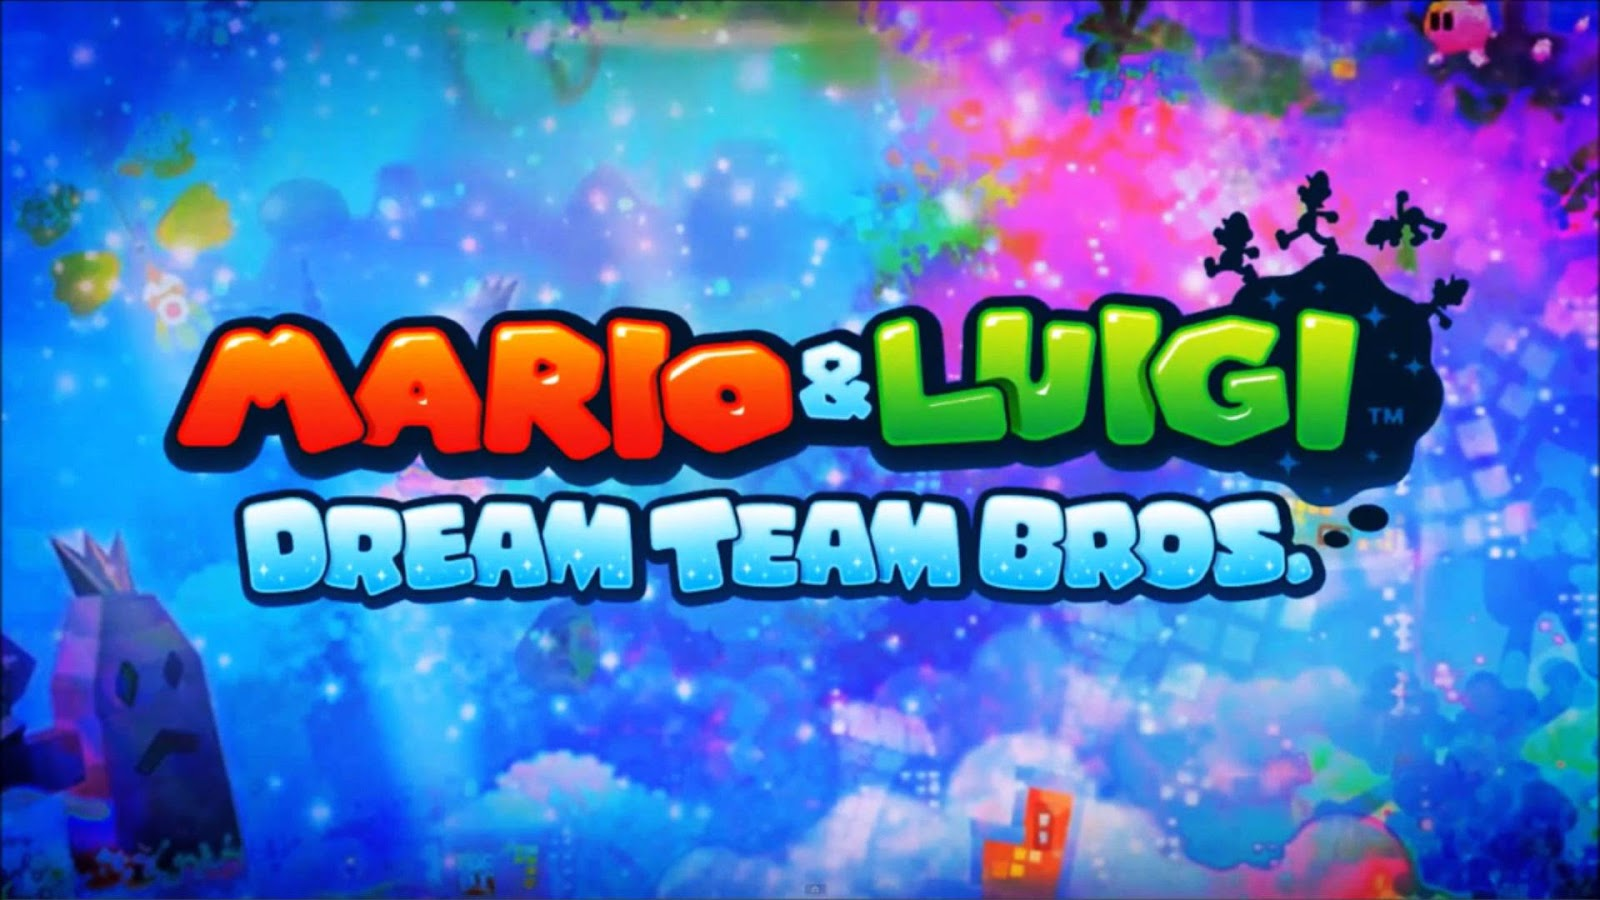 Mario and Luigi Dream Team Bros Wallpaper